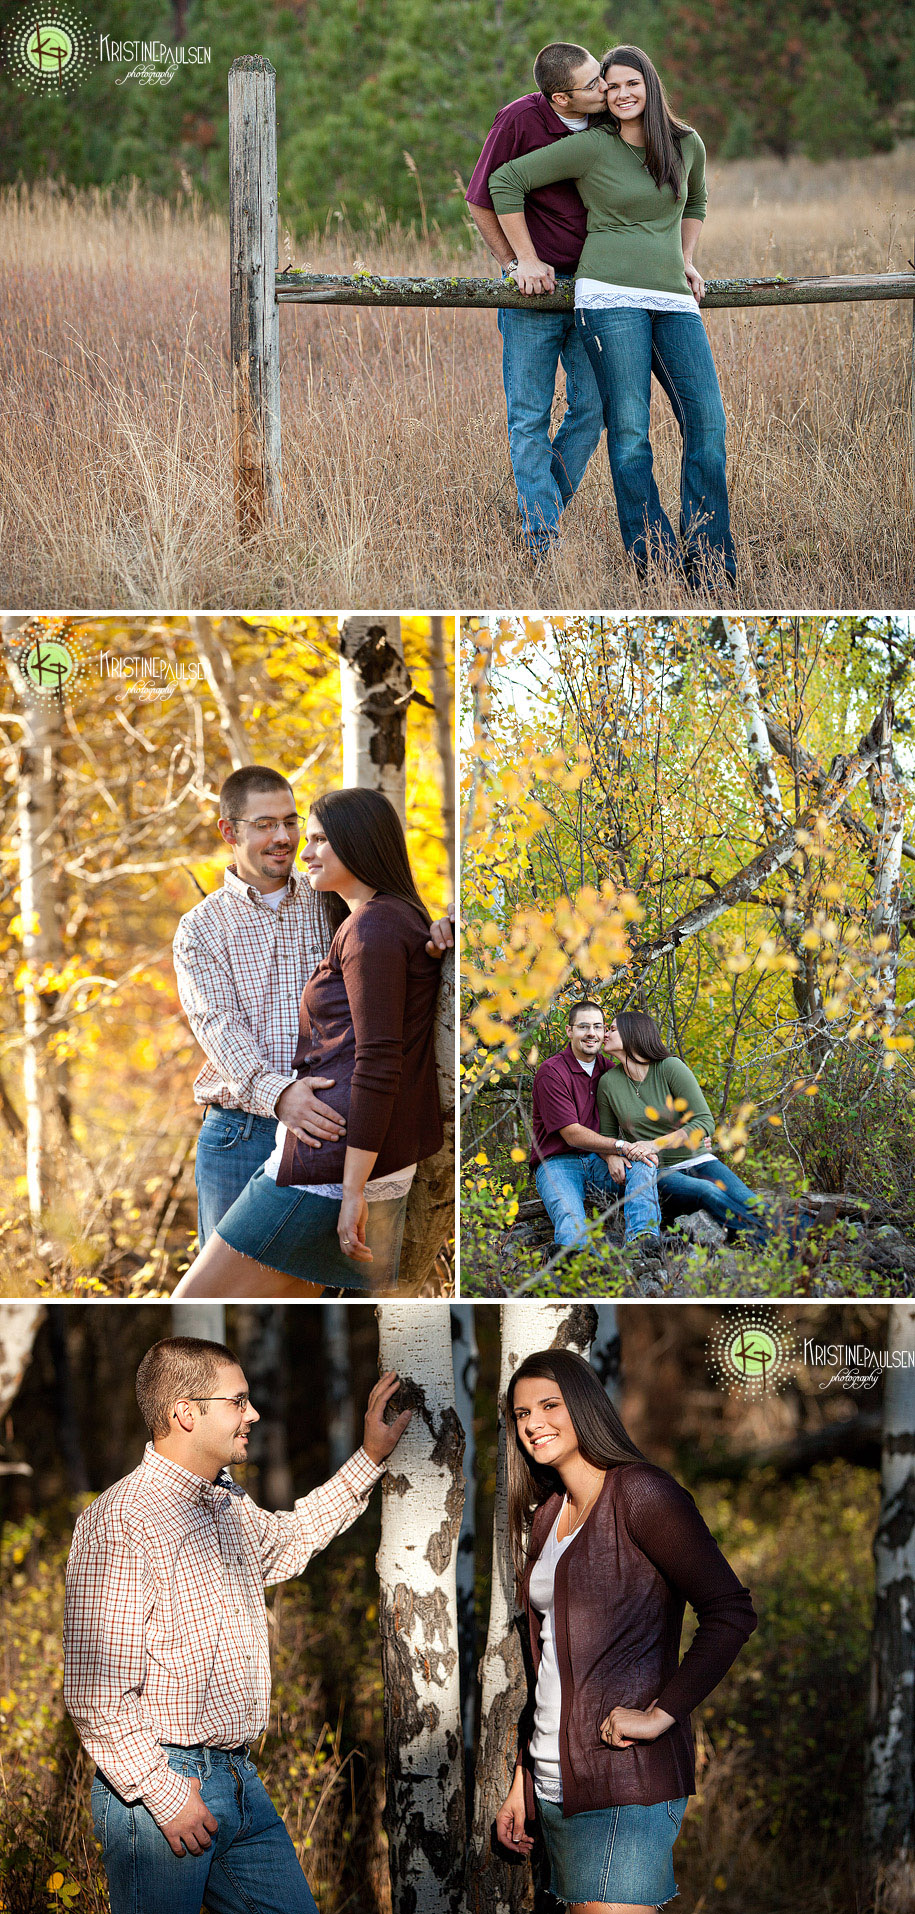 Montana-Engagement-Photographer